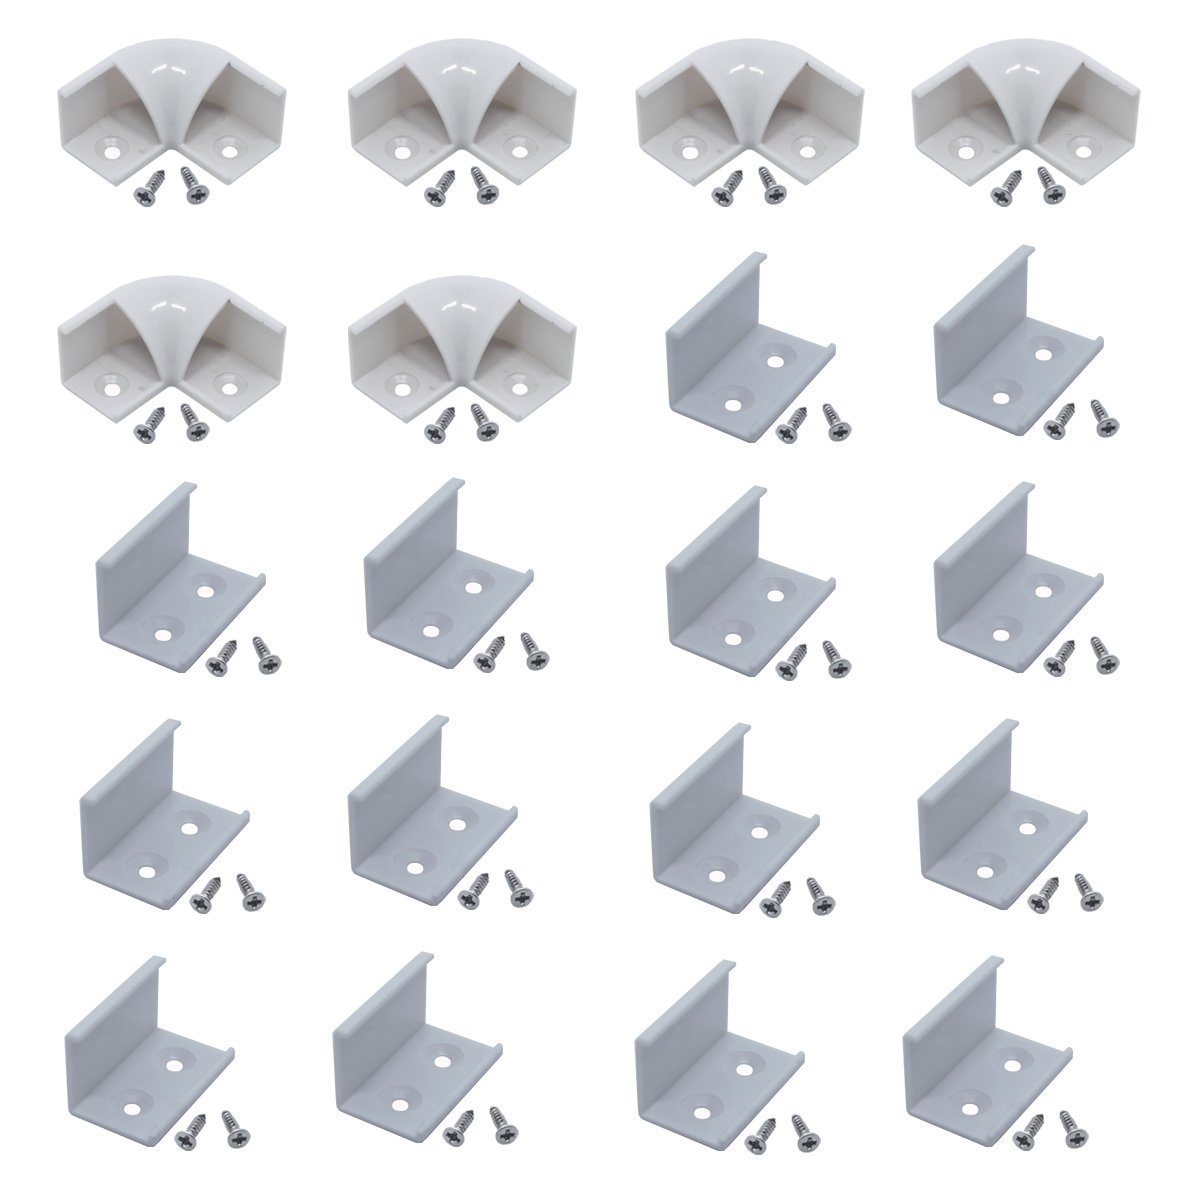 Litever 90 Degrees Corner Connectors, ONLY for Litever Slim V Shape LED Strip Aluminum Channels, Screws Included, LL-016-90D by Litever